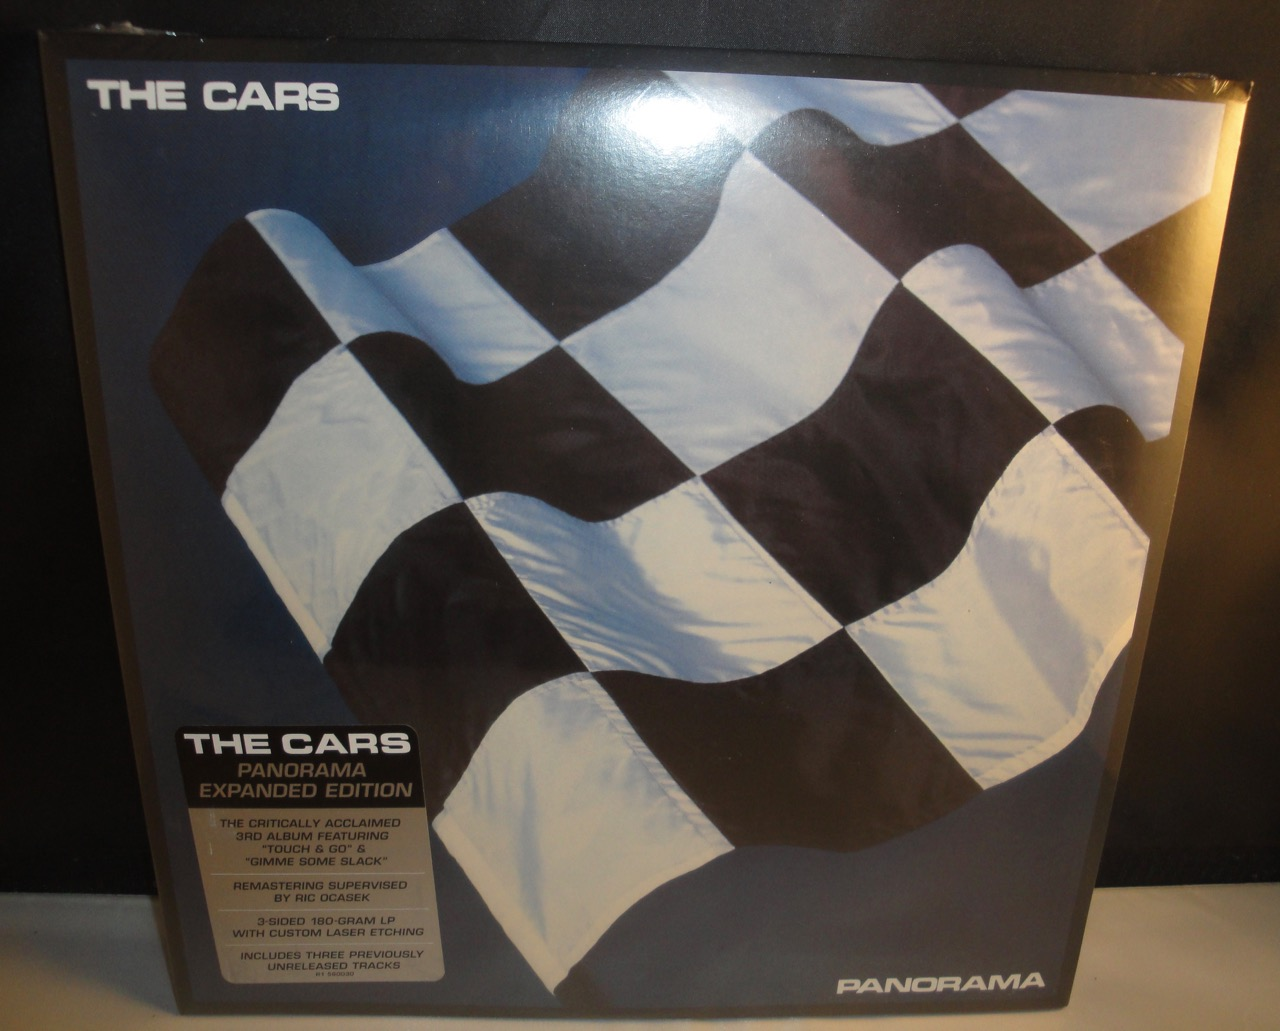 The Cars - Panorama (Expanded Edition) - Double Vinyl LP, Remastered, 2017